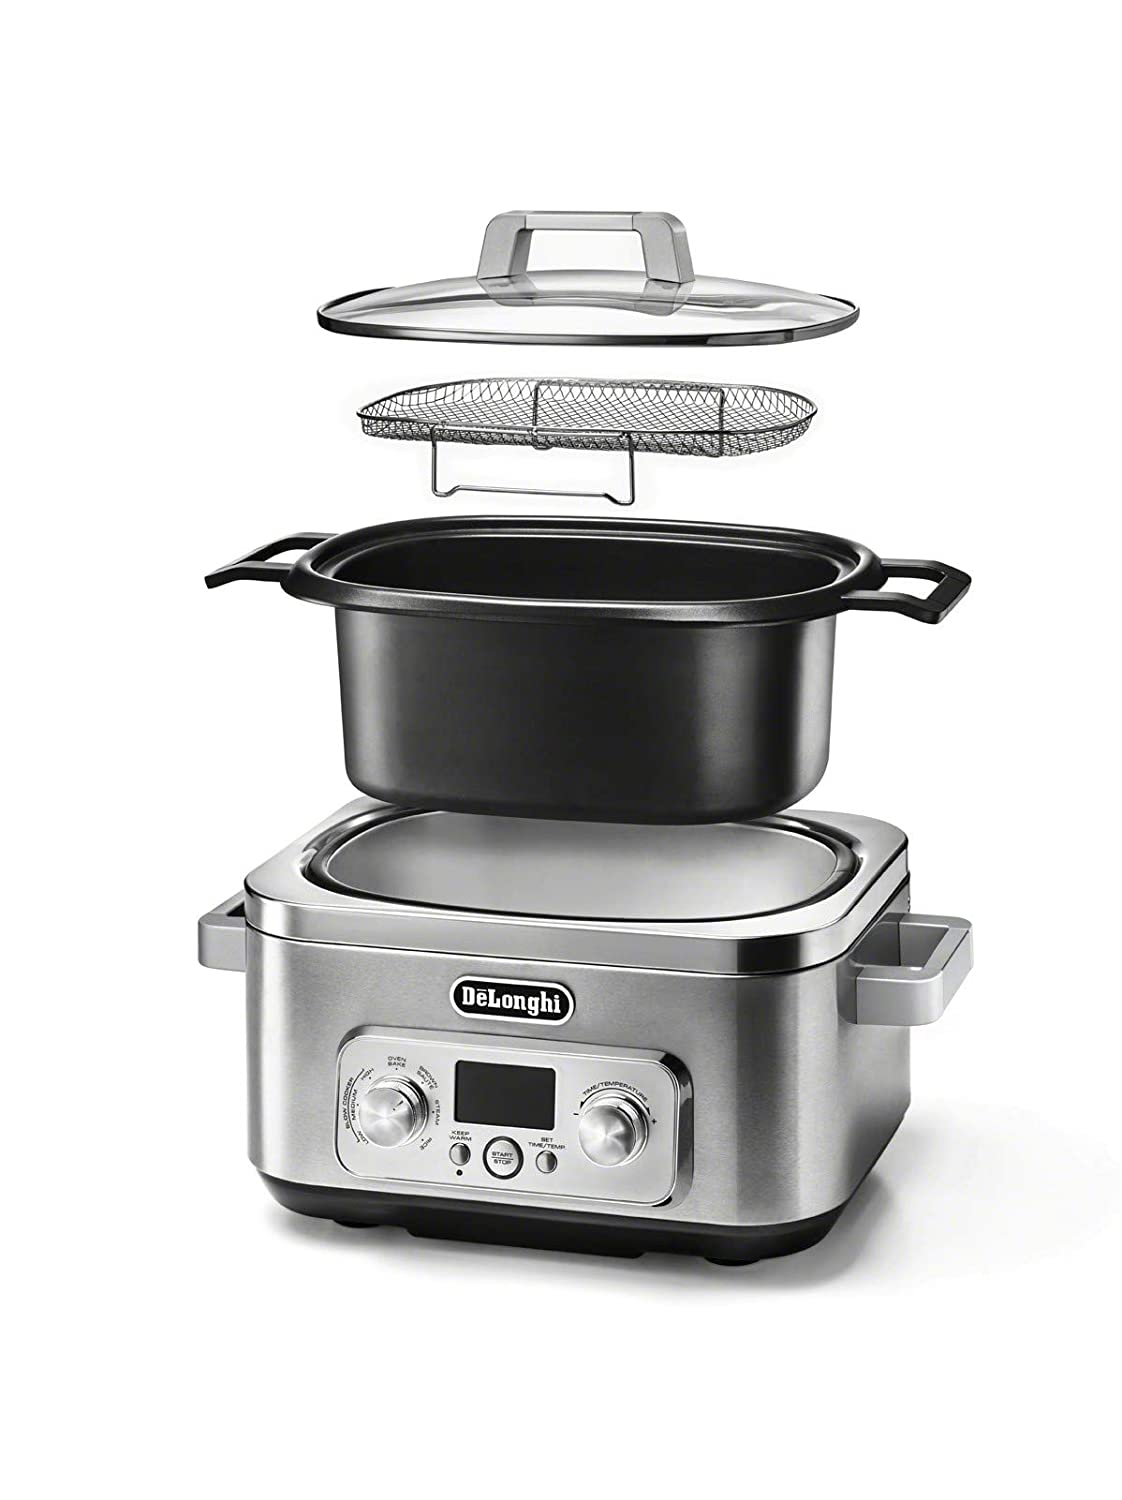 De Longhi CKM1641D Livenza All-in-One Programmable Multi Cooker Stainless Steel